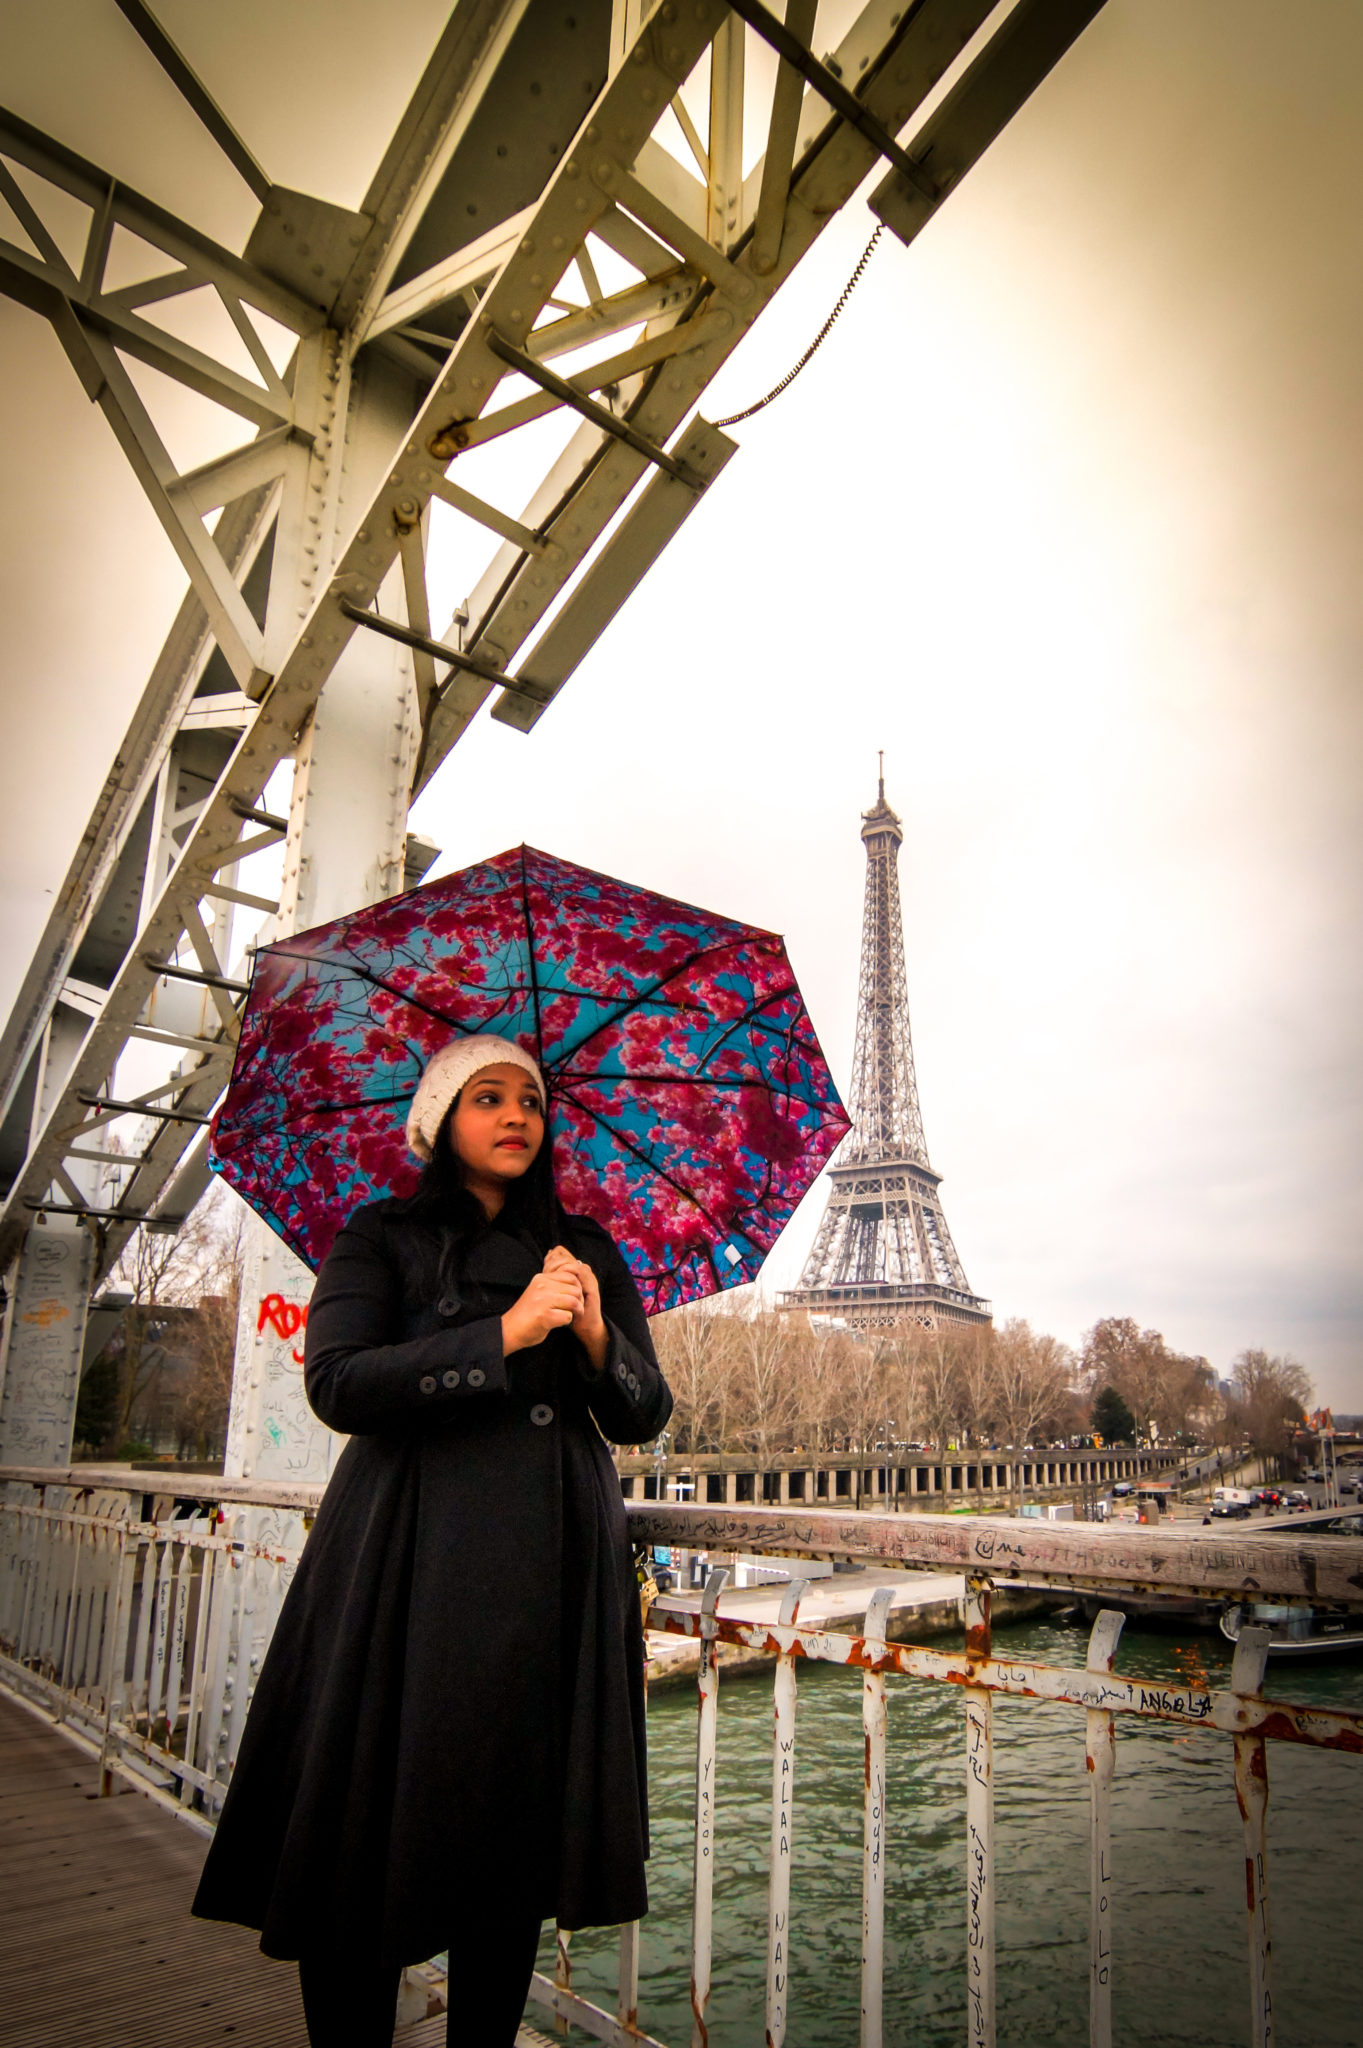 Hemaposesesvalises_Happysweeds_Cherry_Umbrella_Eiffel_tower